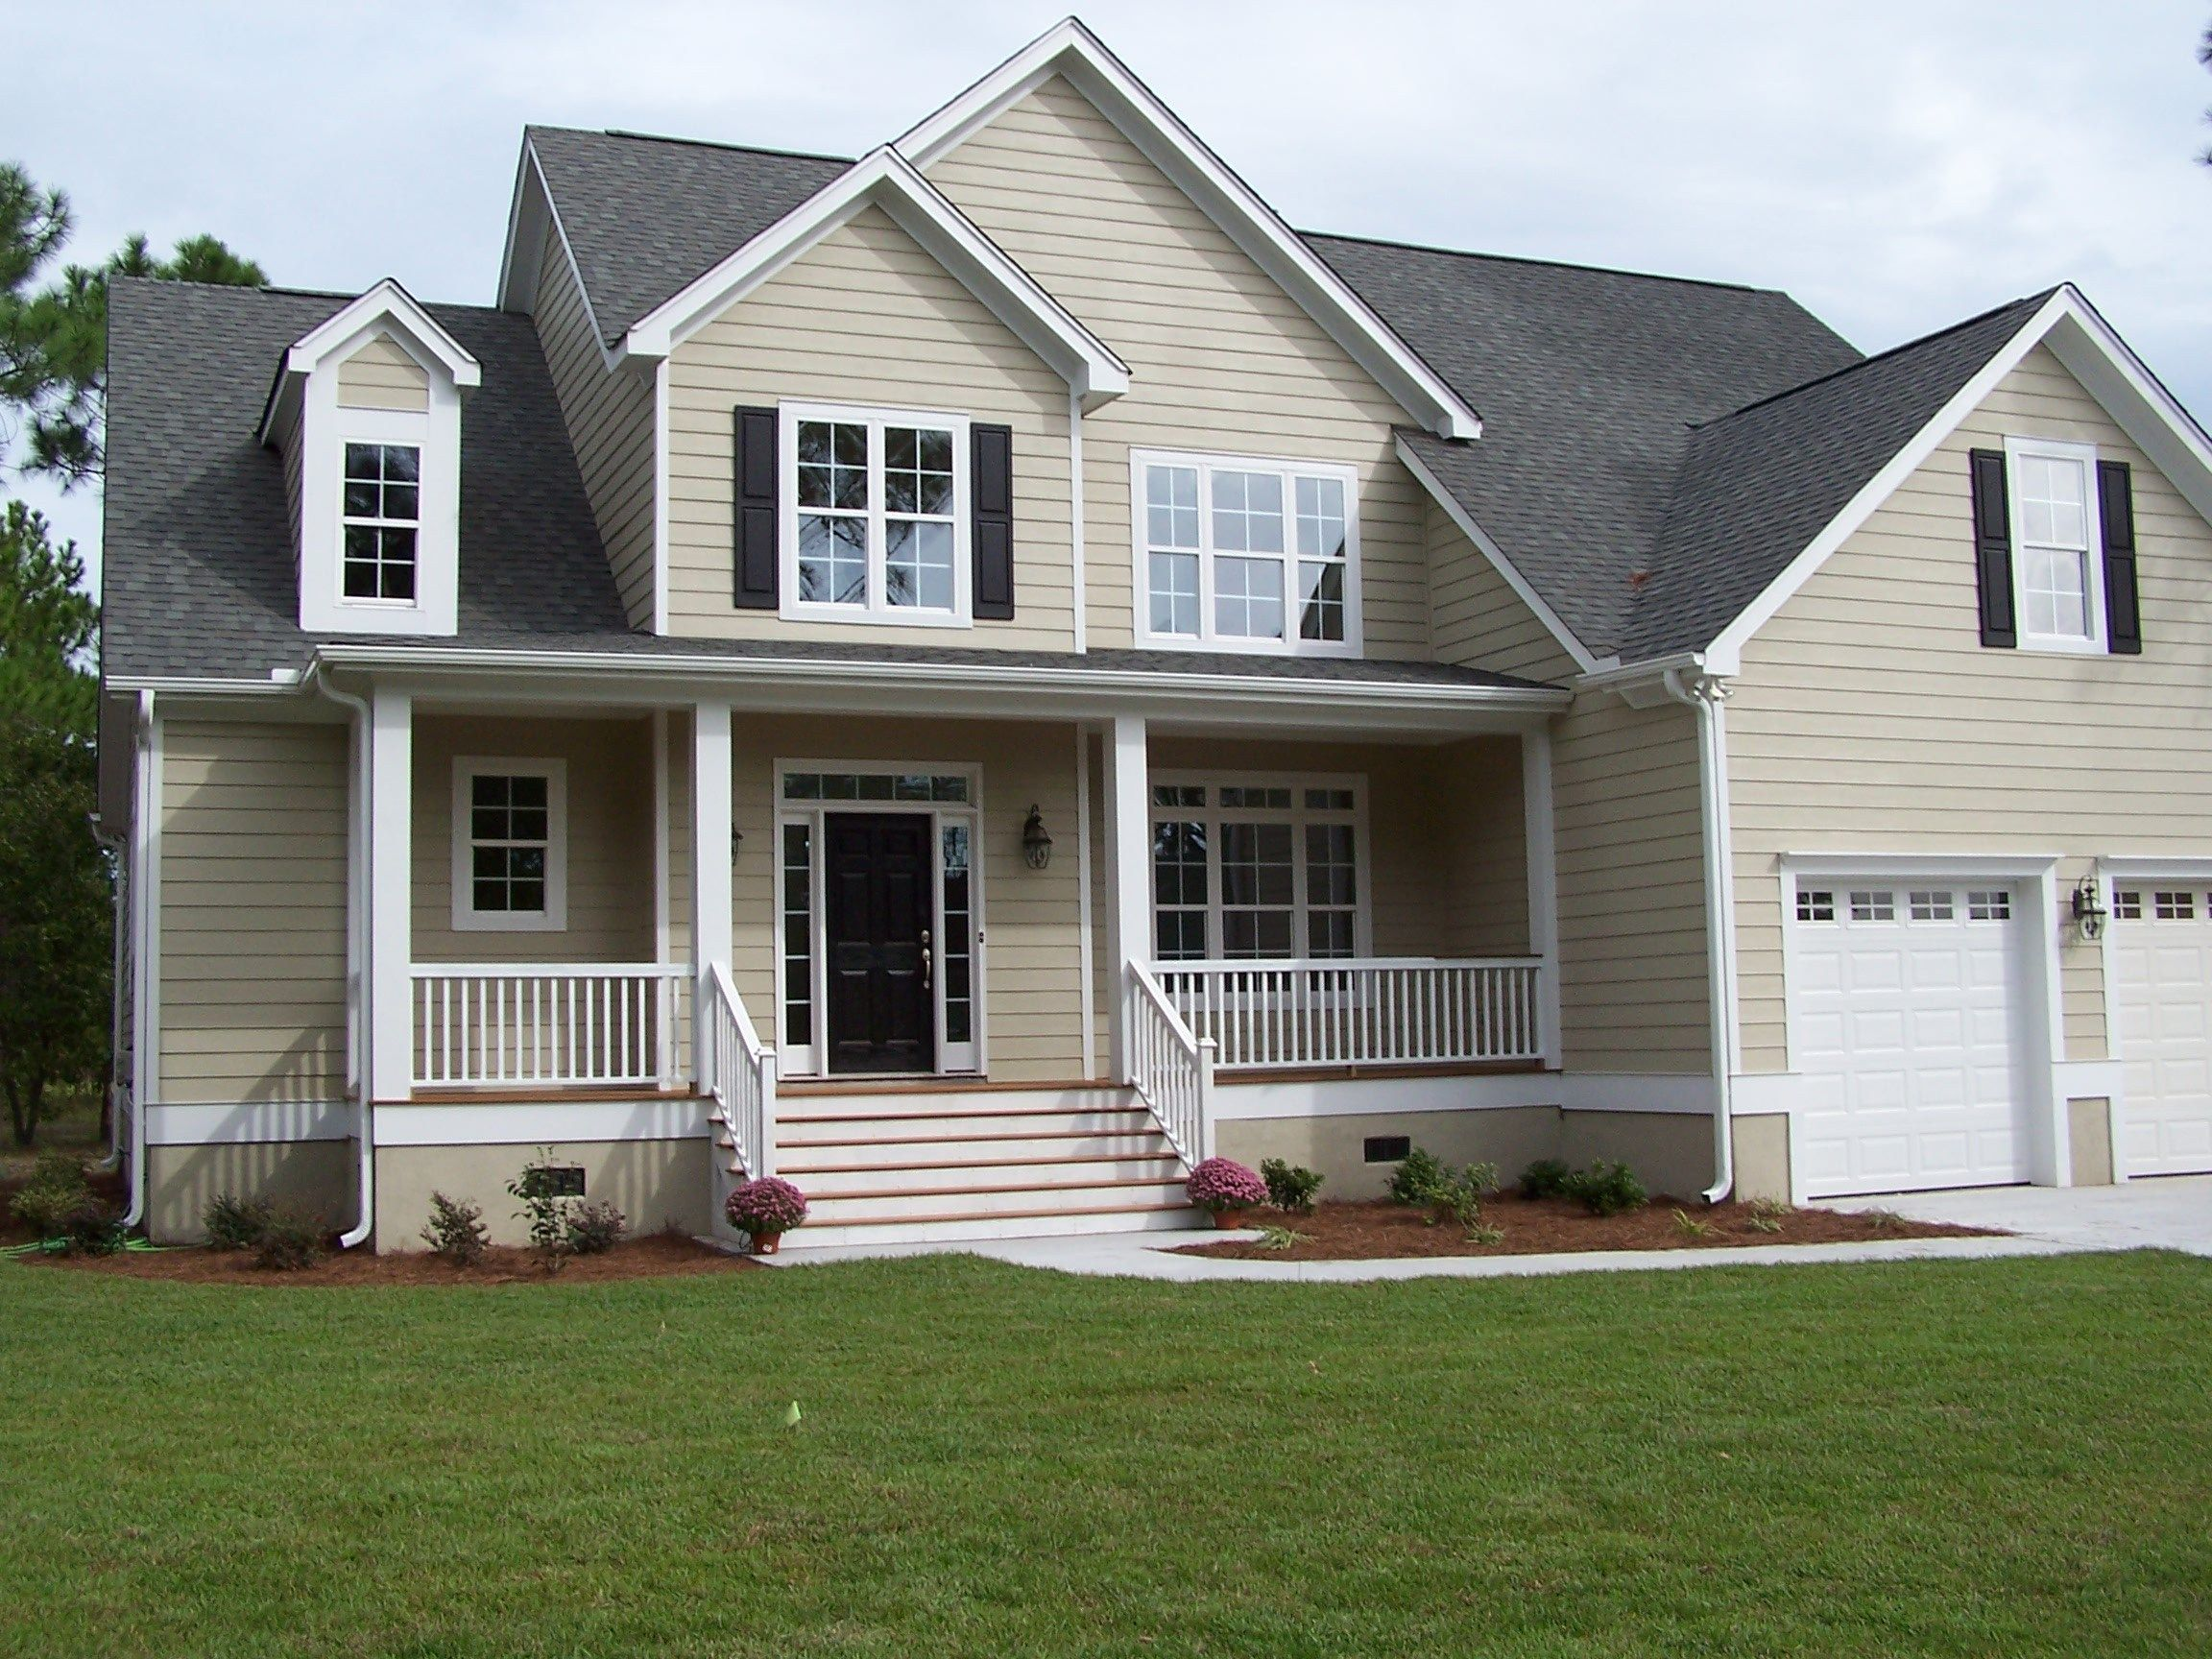 Hudson Home Builders Inc Home Page Regarding Tips On Choosing A Home Builder New Home Construction Home Builders Melbourne House